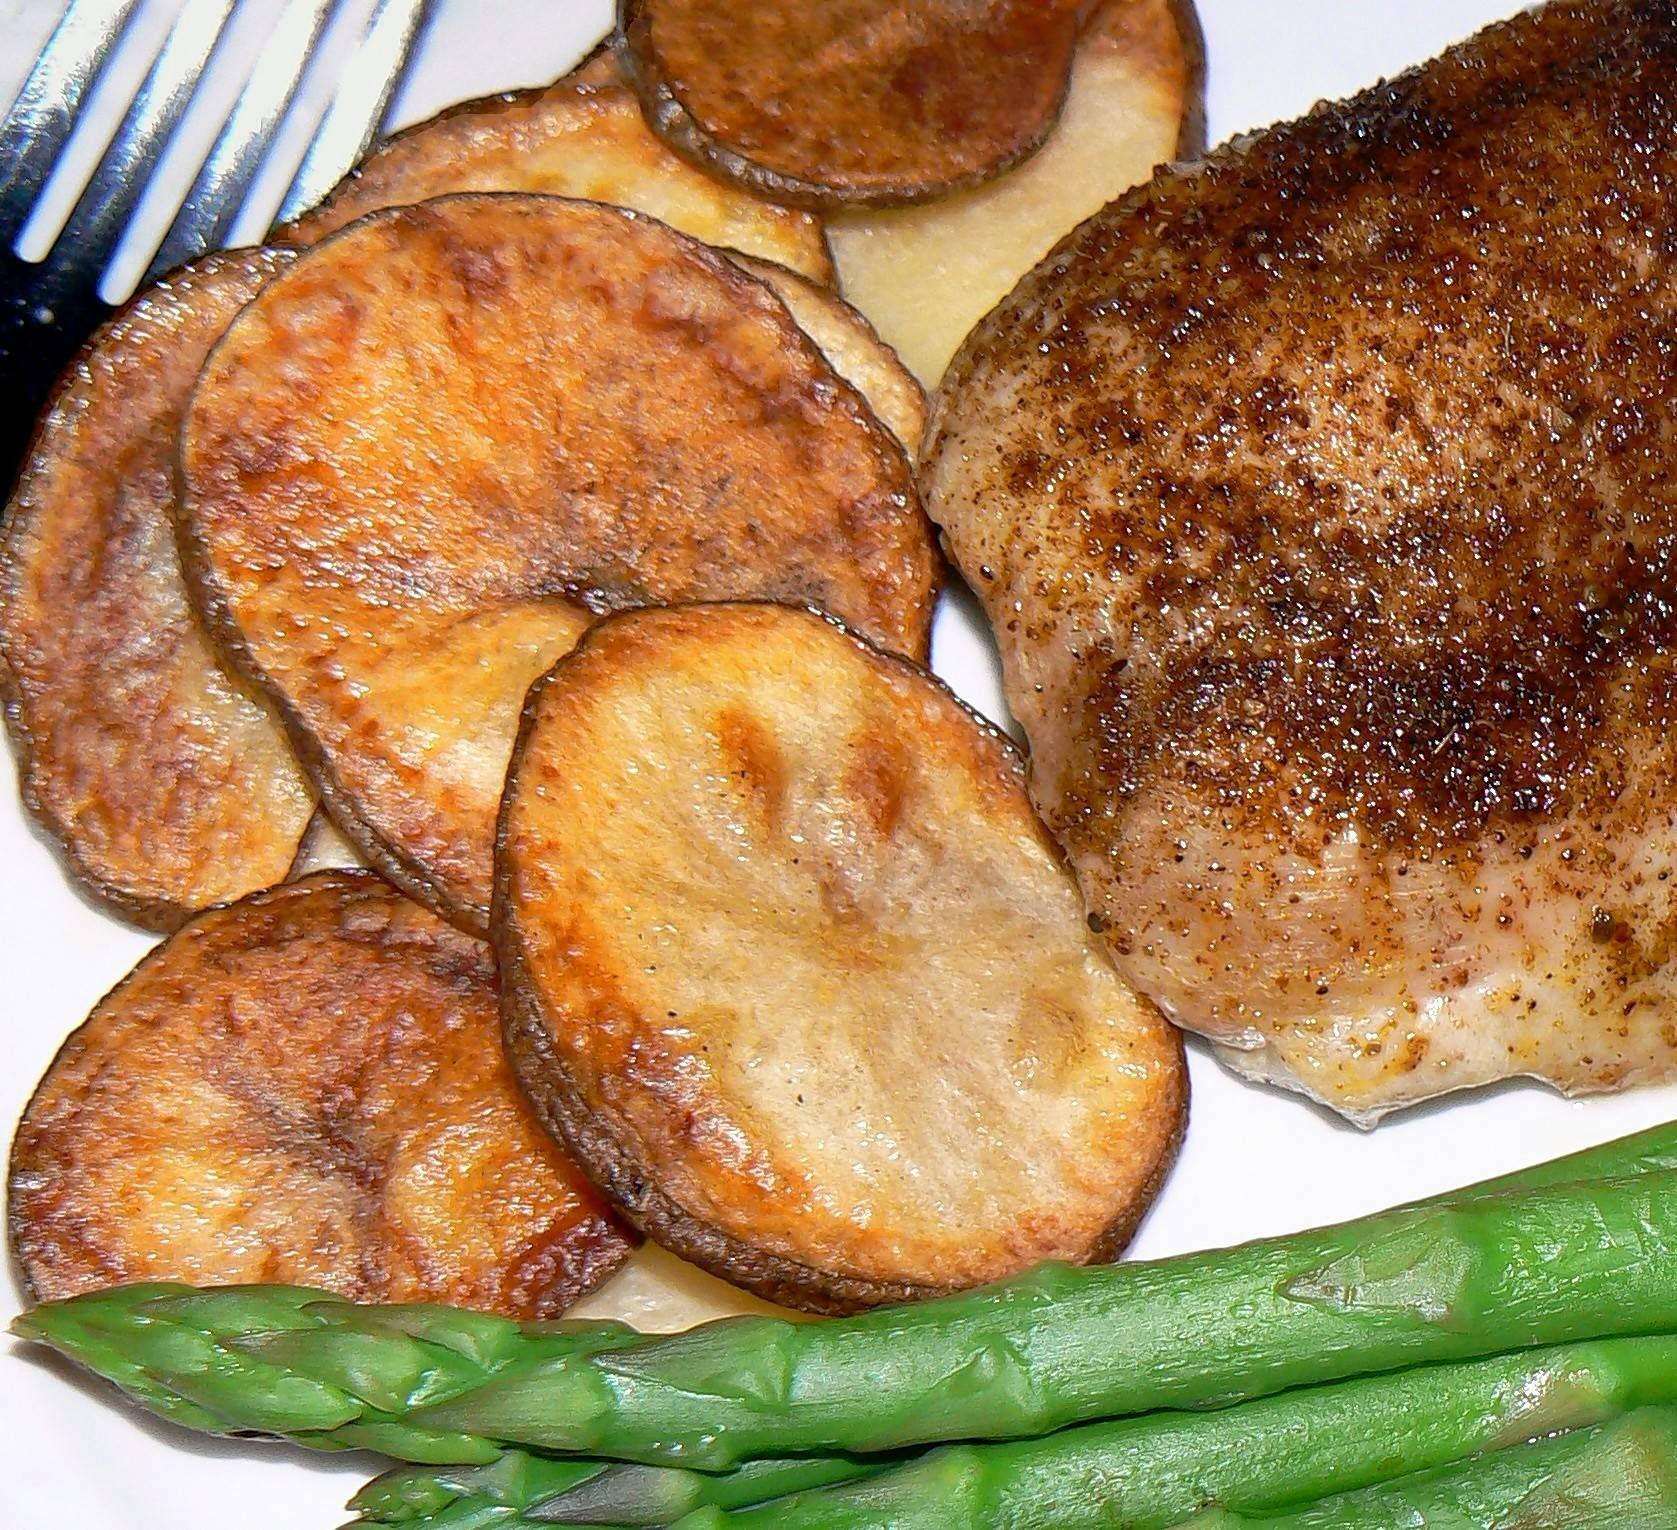 Oven-Fried Potatoes with Beef Tallow